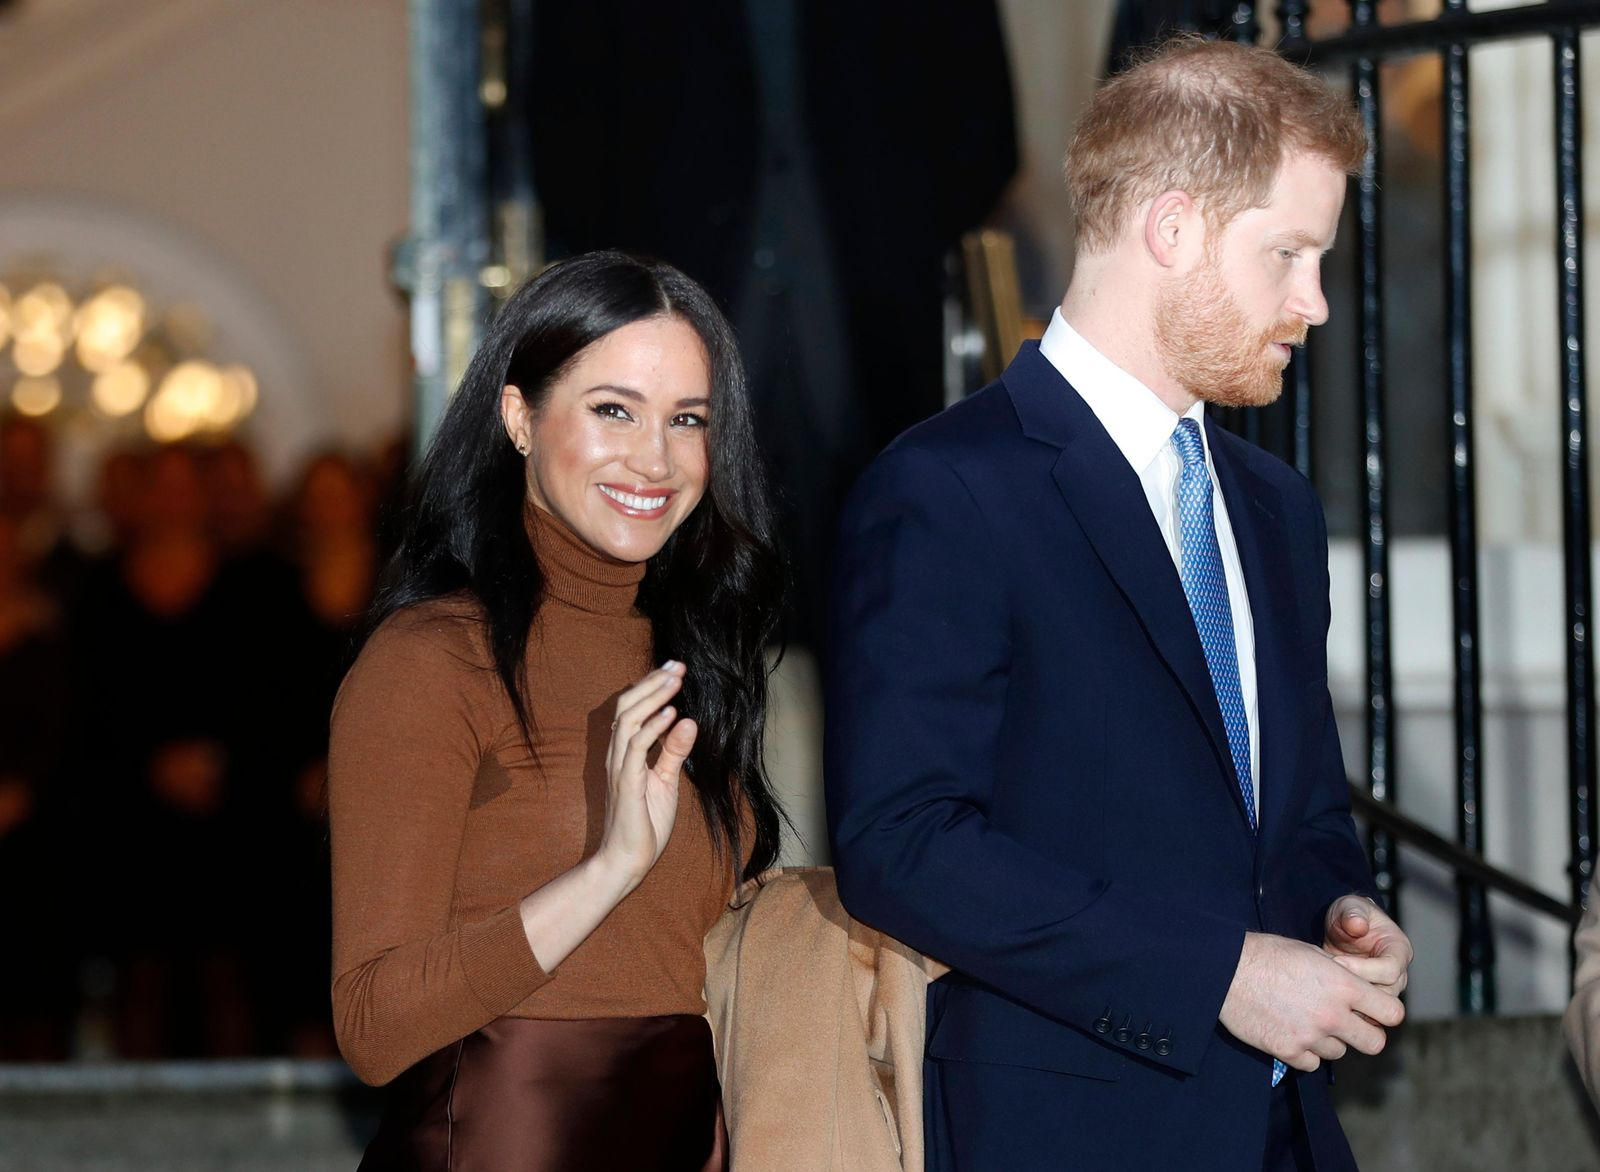 FILE - In this Jan. 7, 2020, file photo, Britain's Prince Harry and Meghan, Duchess of Sussex leave after visiting Canada House in London, after their recent stay in Canada.{ } (AP Photo/Frank Augstein, File)